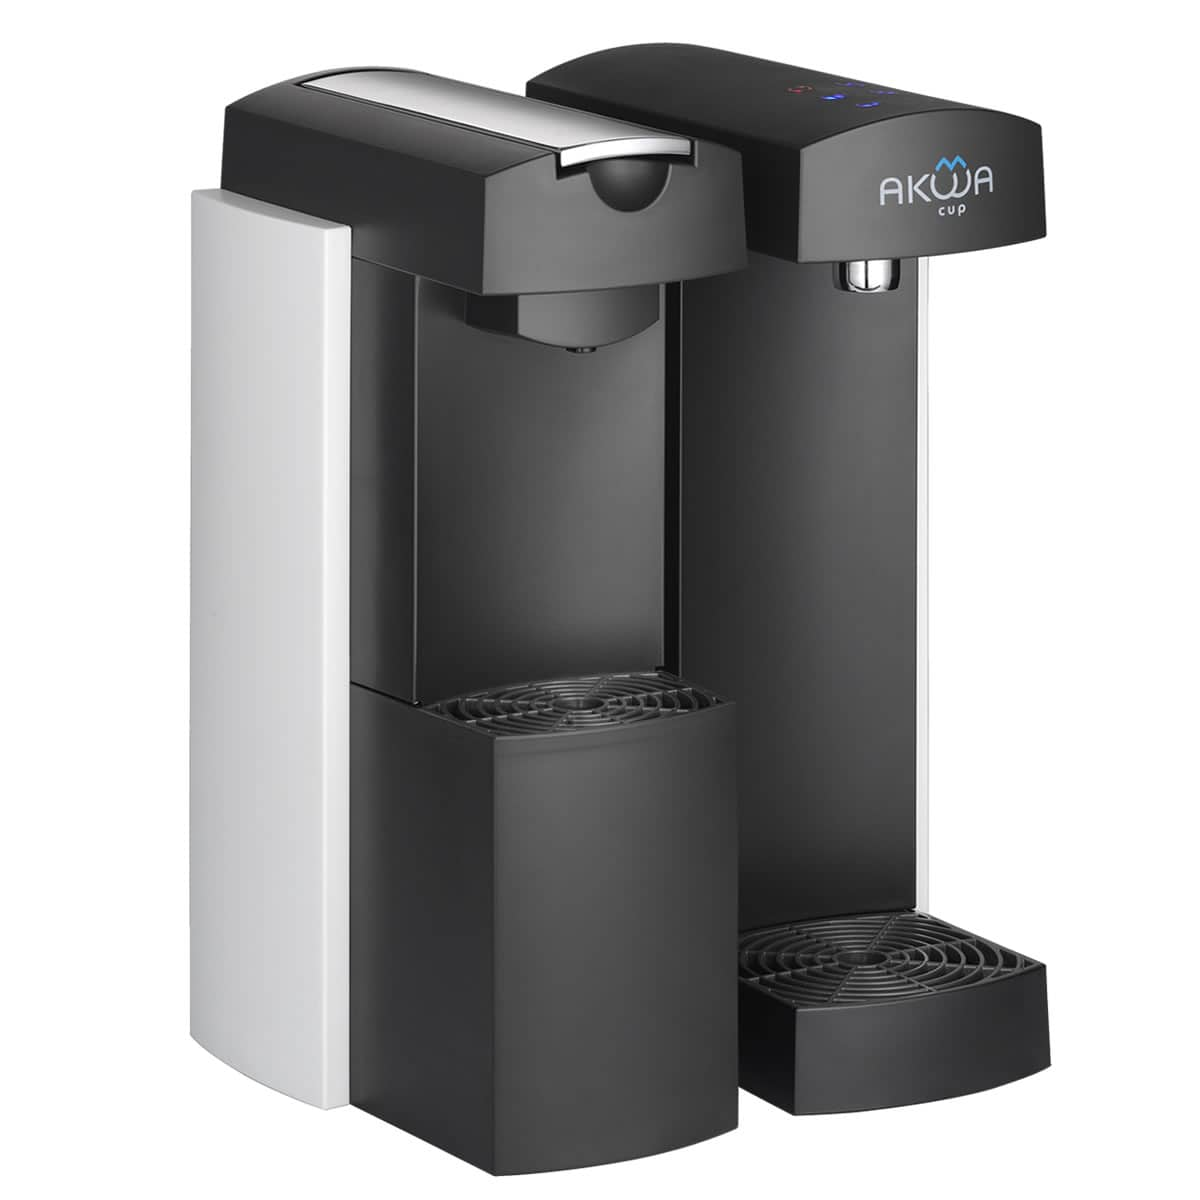 Purified water dispenser and coffee